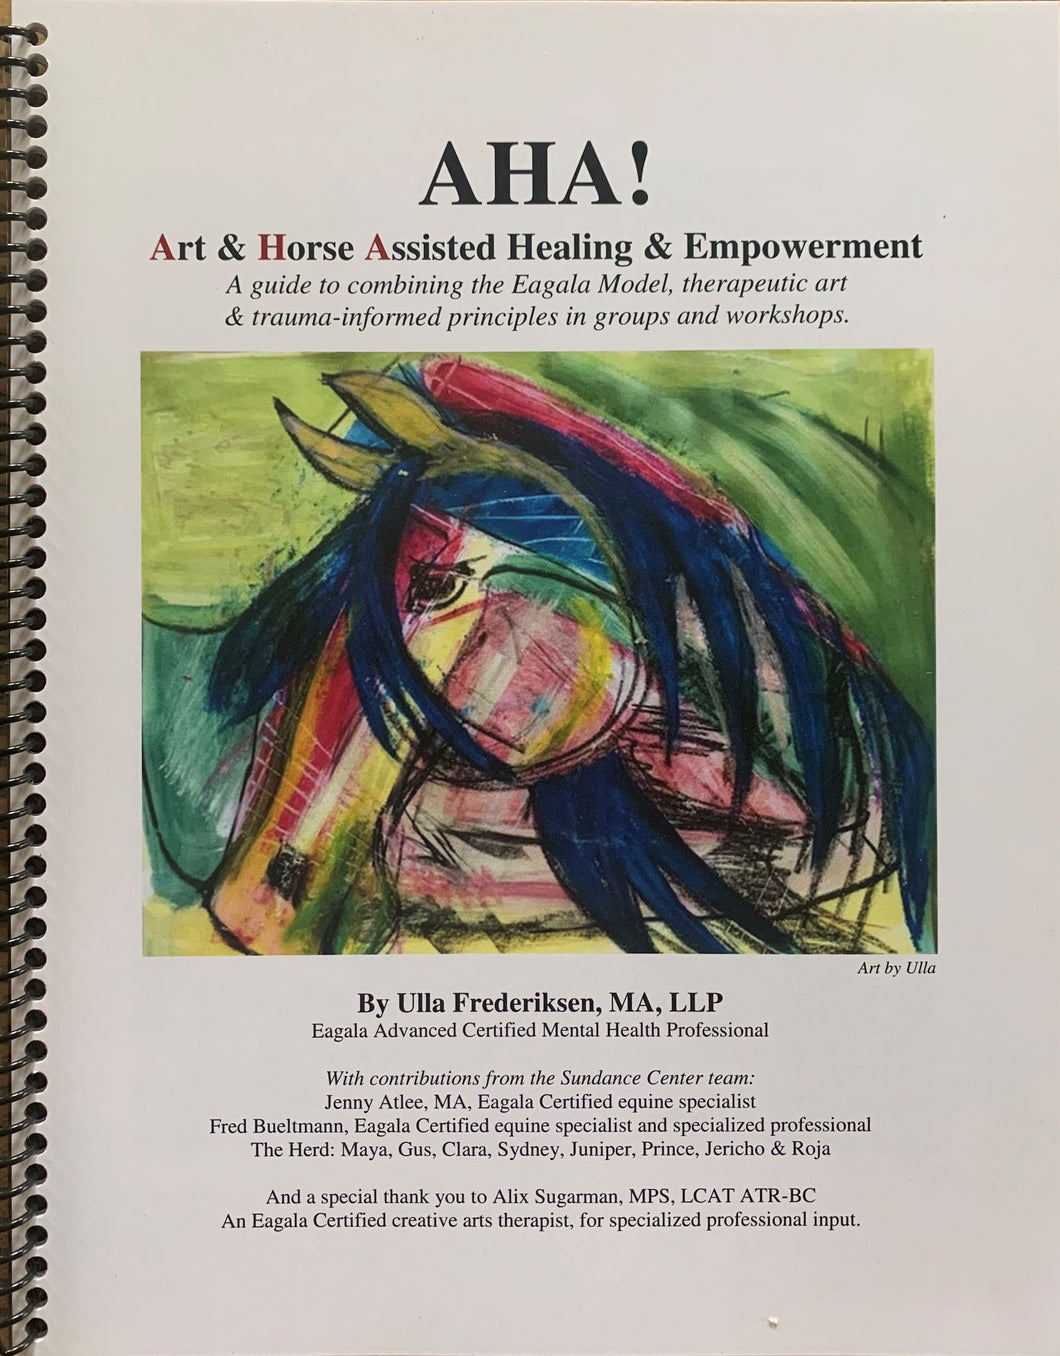 AHA! Art & Horse Assisted groups and workshops